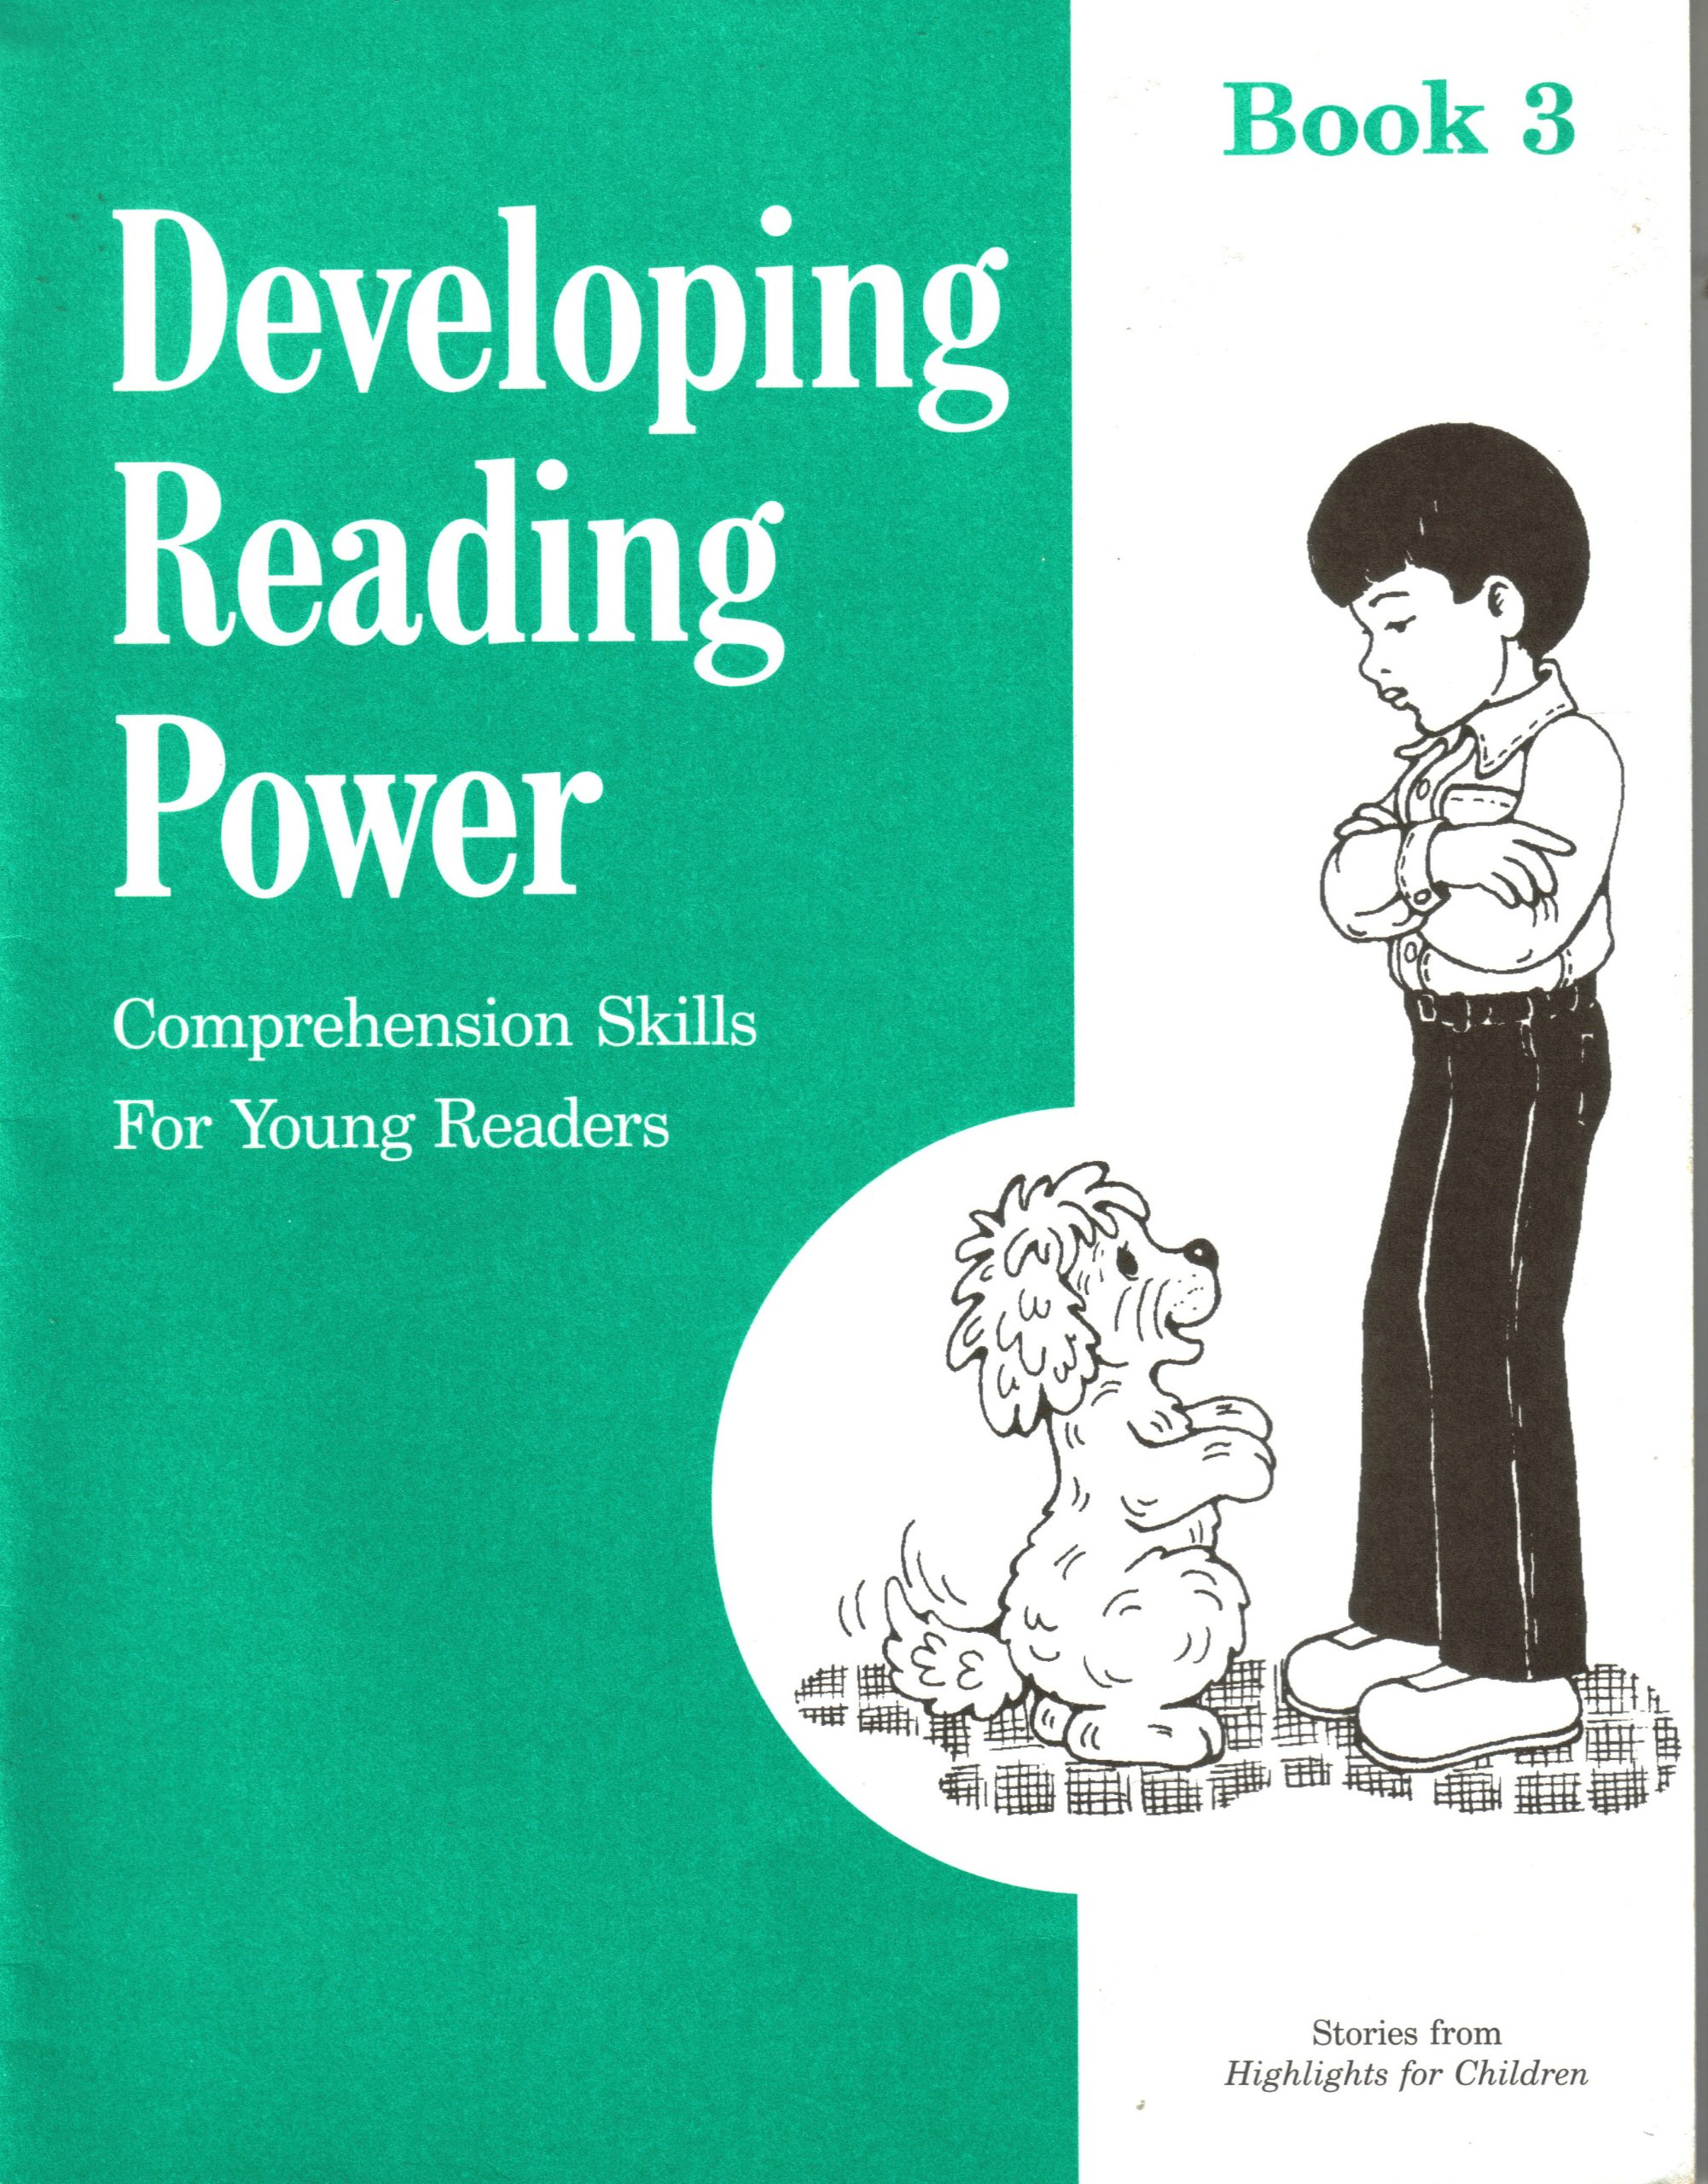 - Developing Reading Power: Comprehension Skills For Young Readers